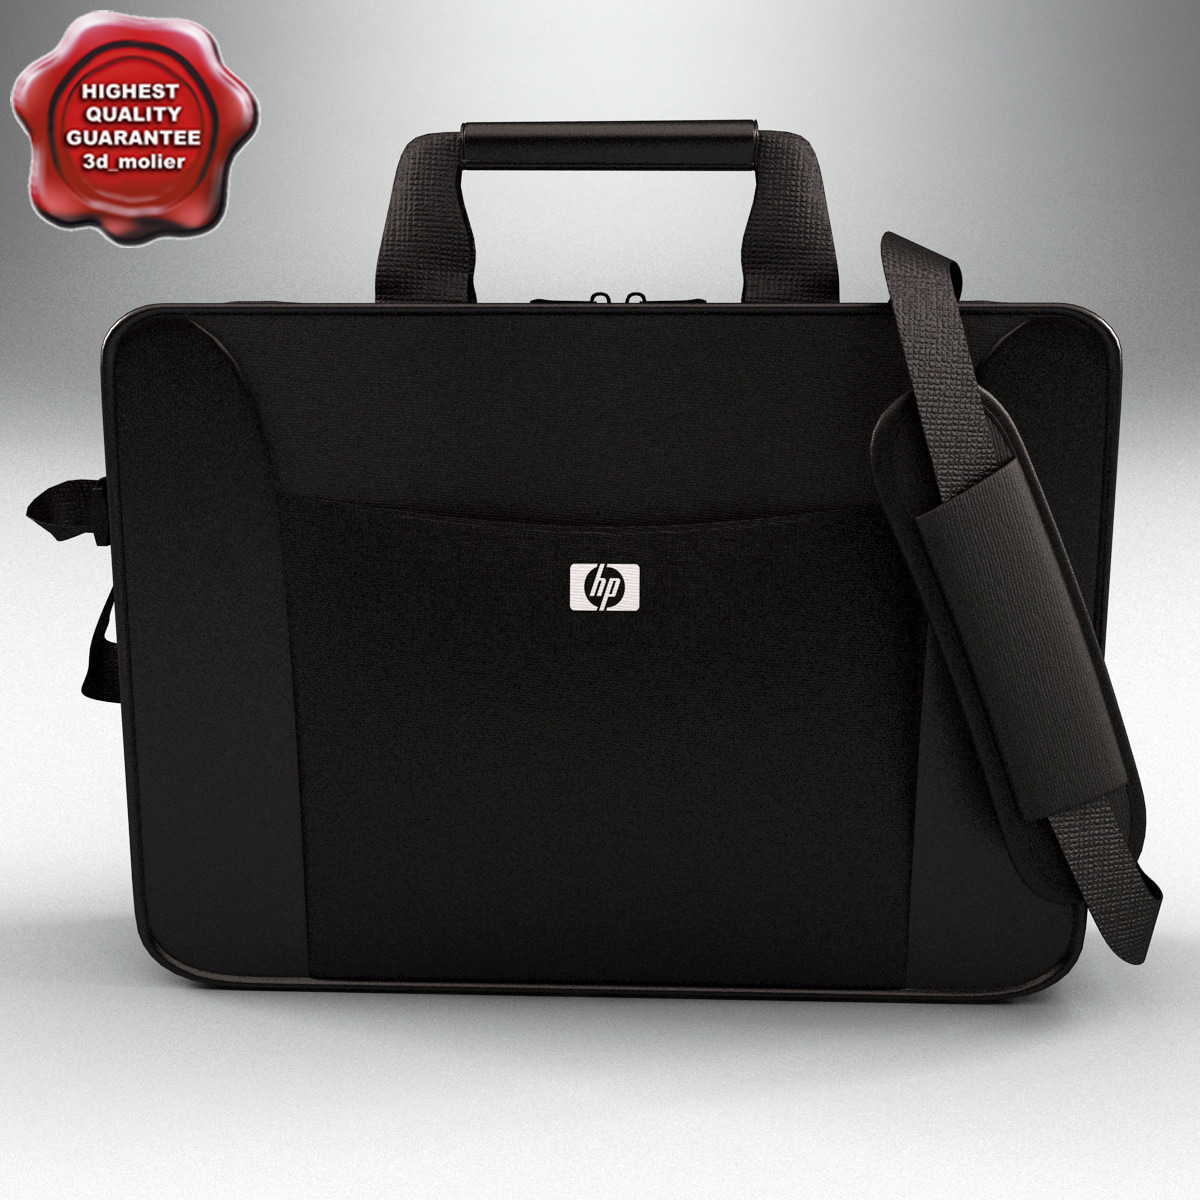 HP_Basic_Notebook_Case_00.jpg